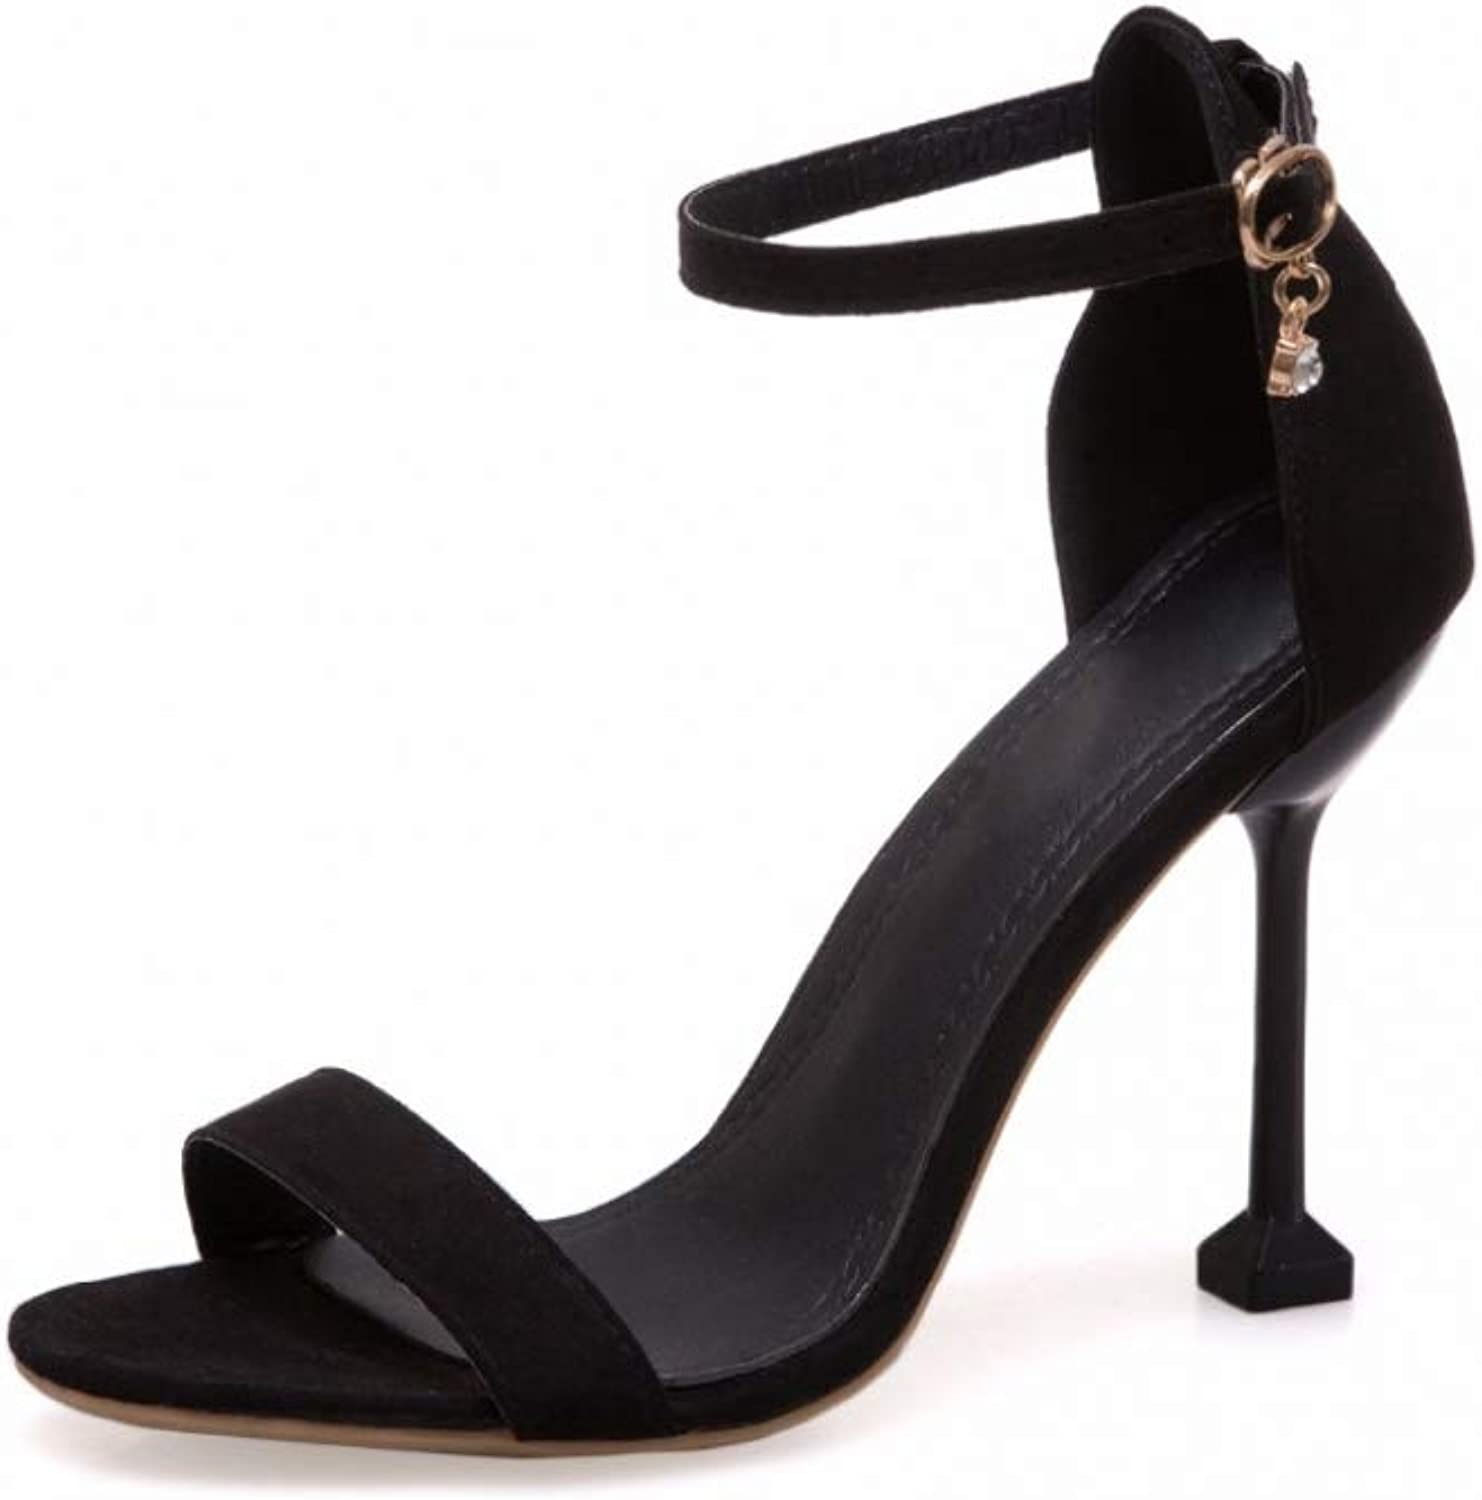 Women High Heels Sandals Concise Suede Summer Party Pump shoes Ankle Strap Ladies Sexy Footwear